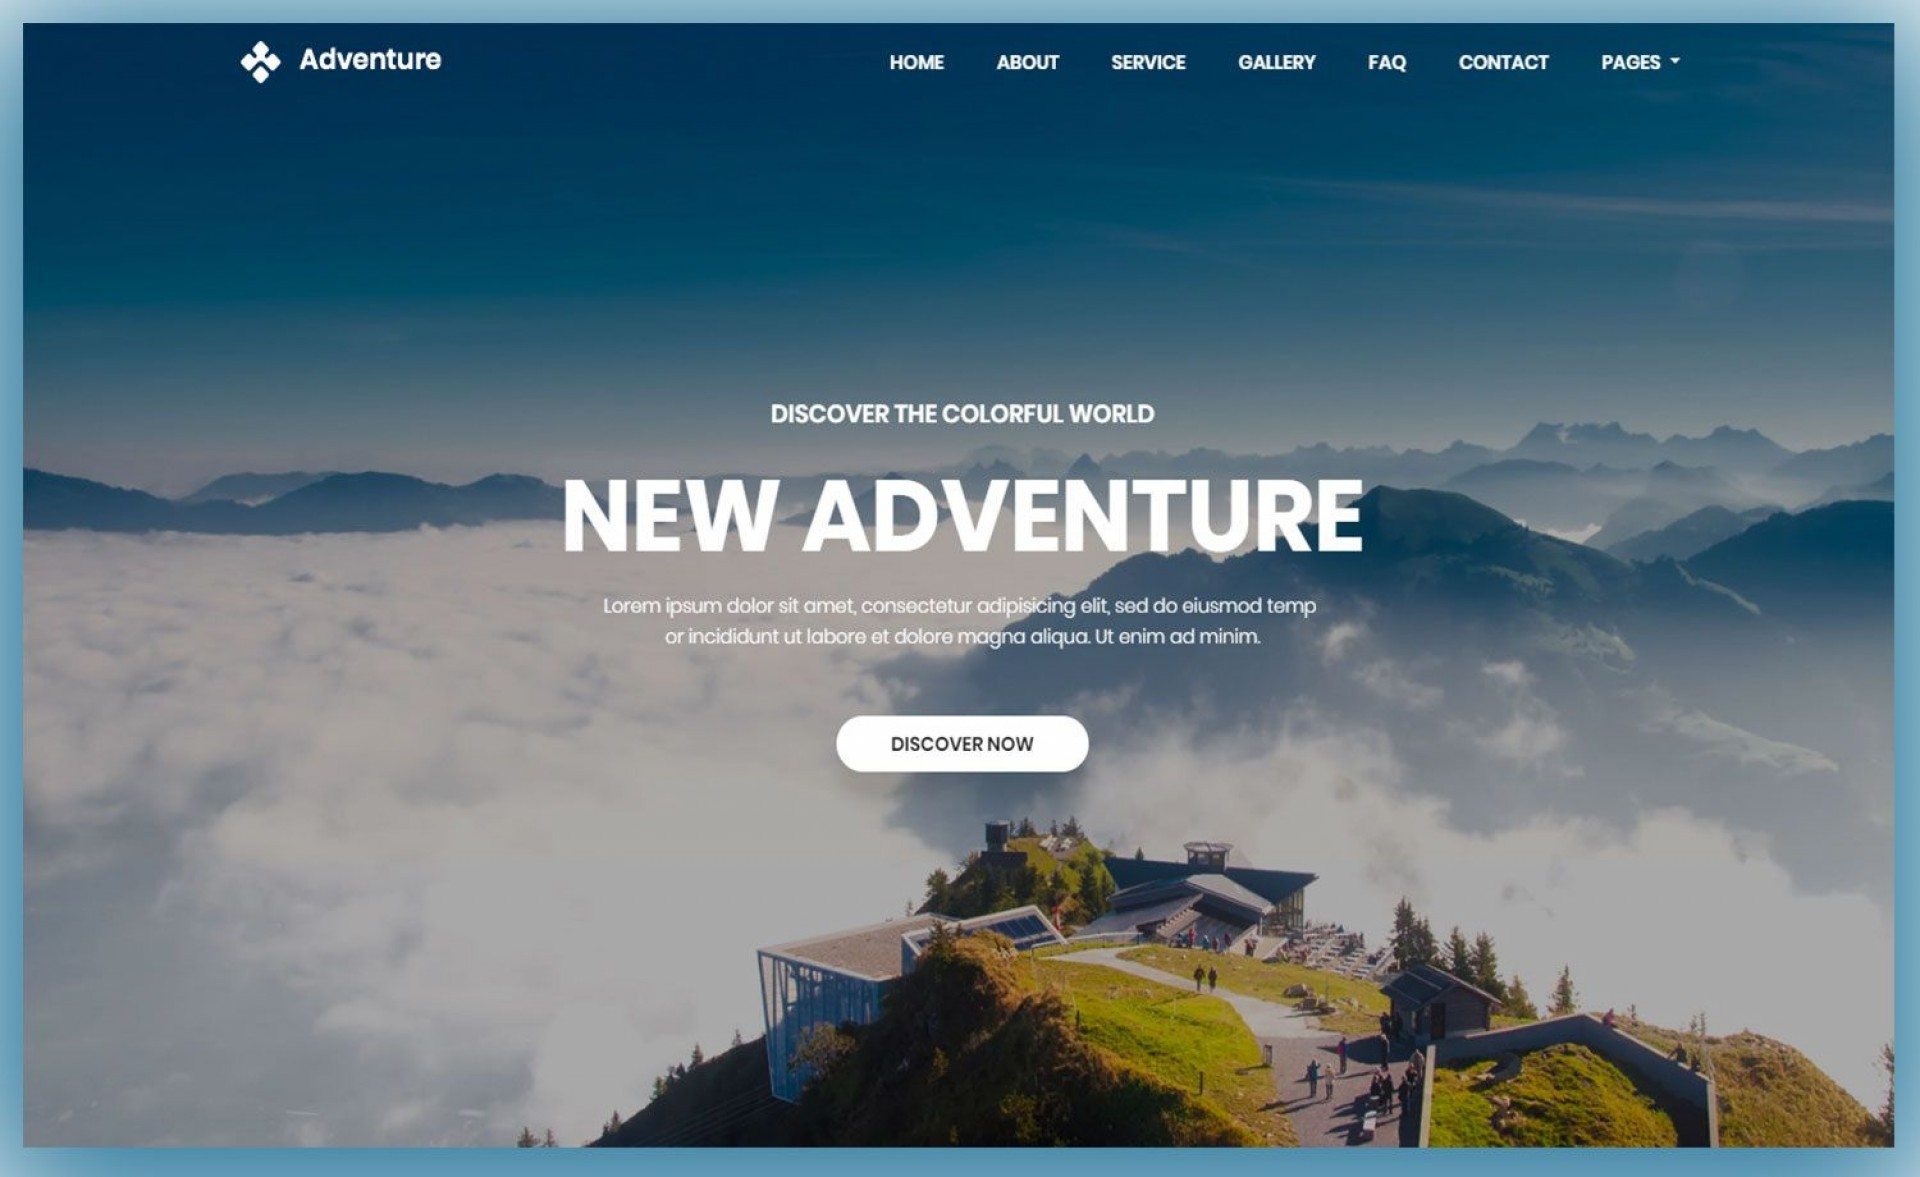 002 Archaicawful Website Template Html Free Download High Def  Indian School Software Company Spice1920